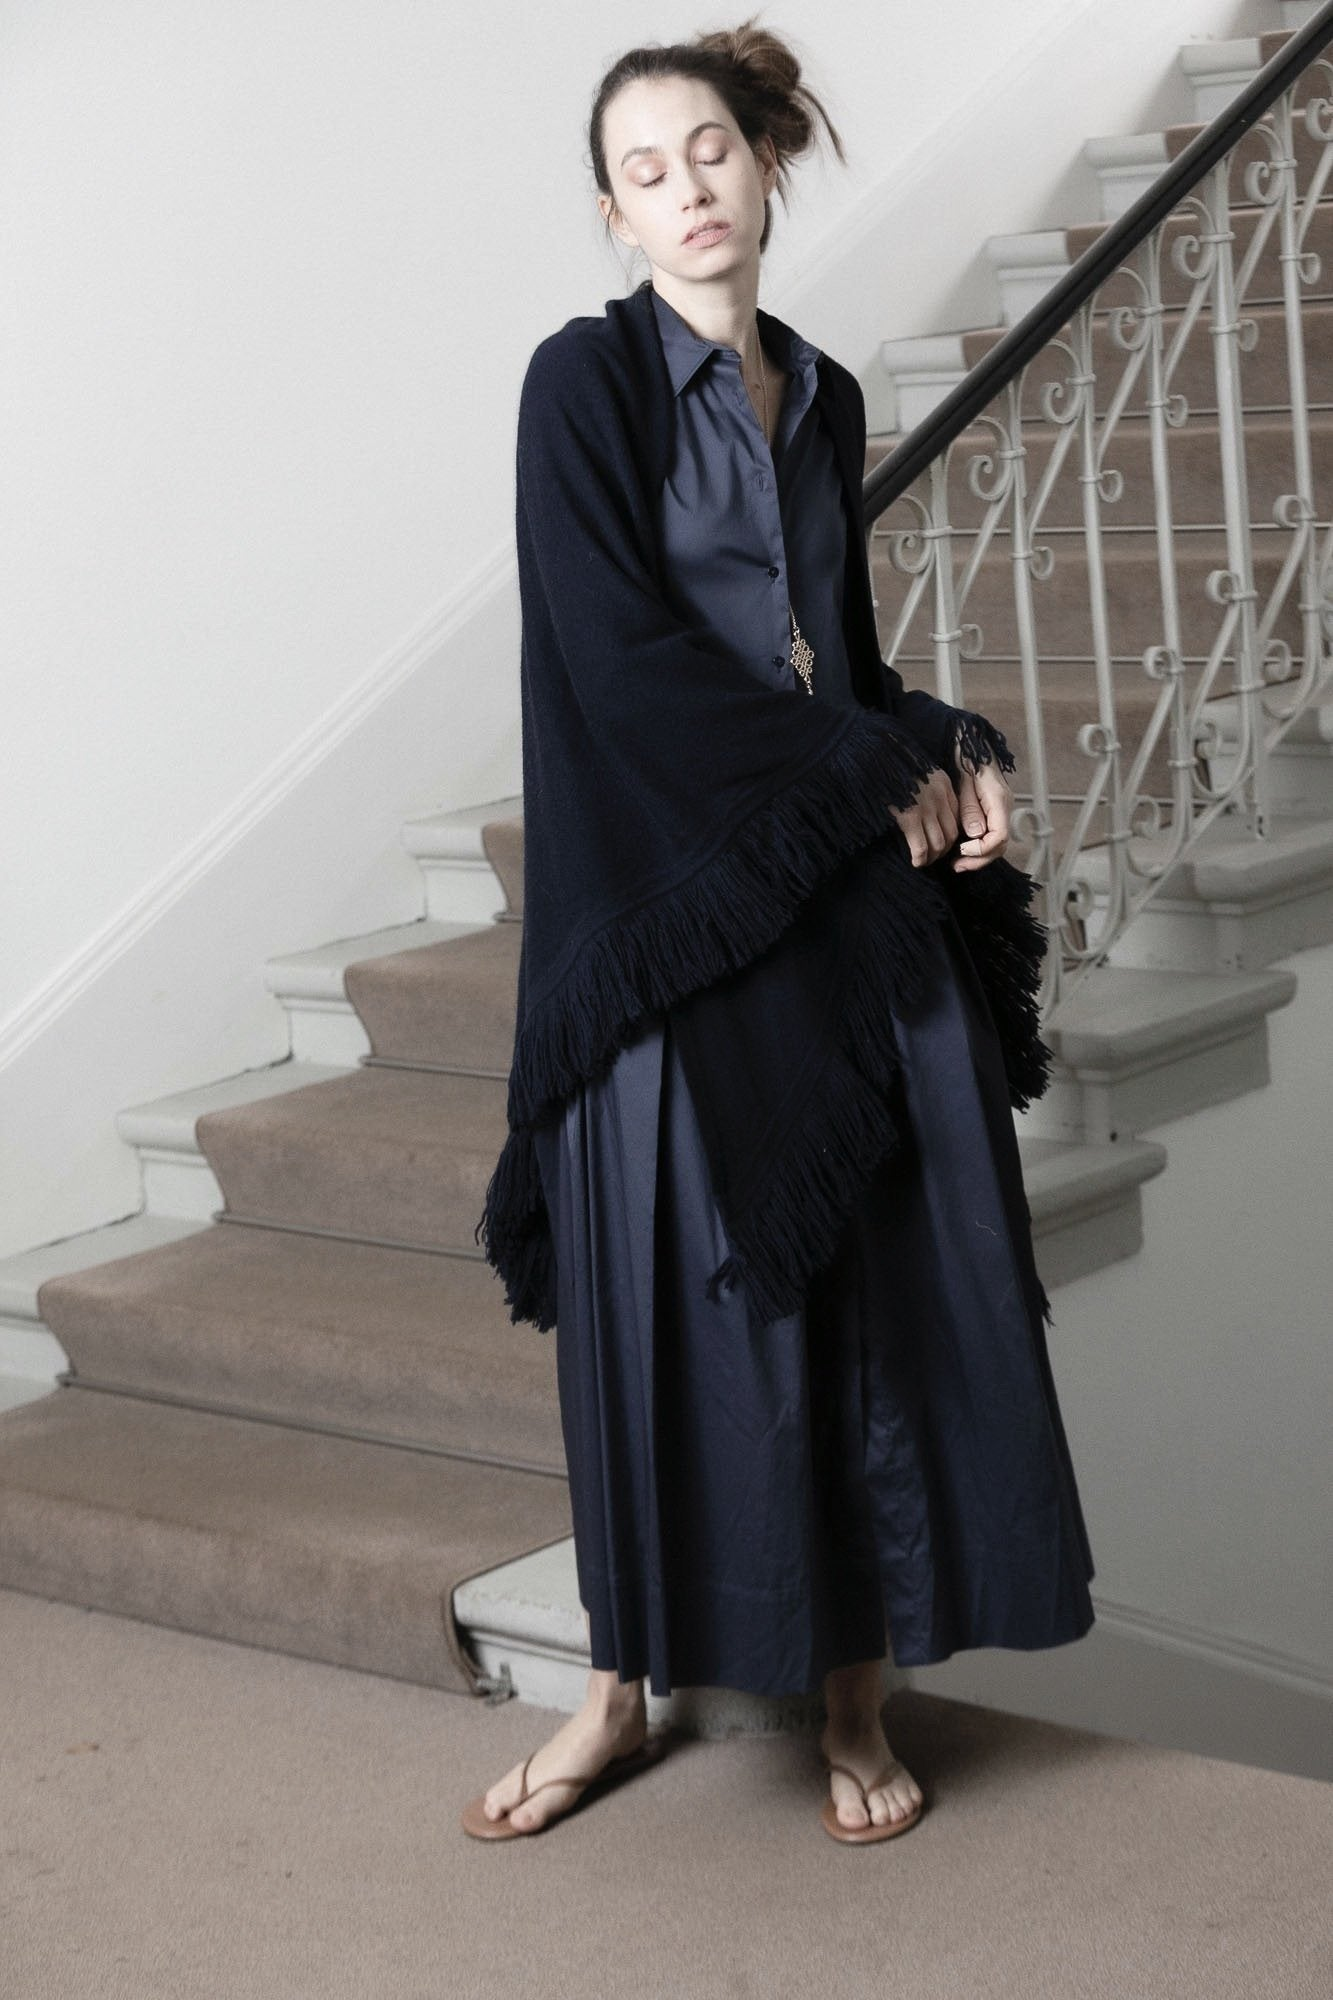 Choice by Réjane Rosenberger Cashmere Poncho navy